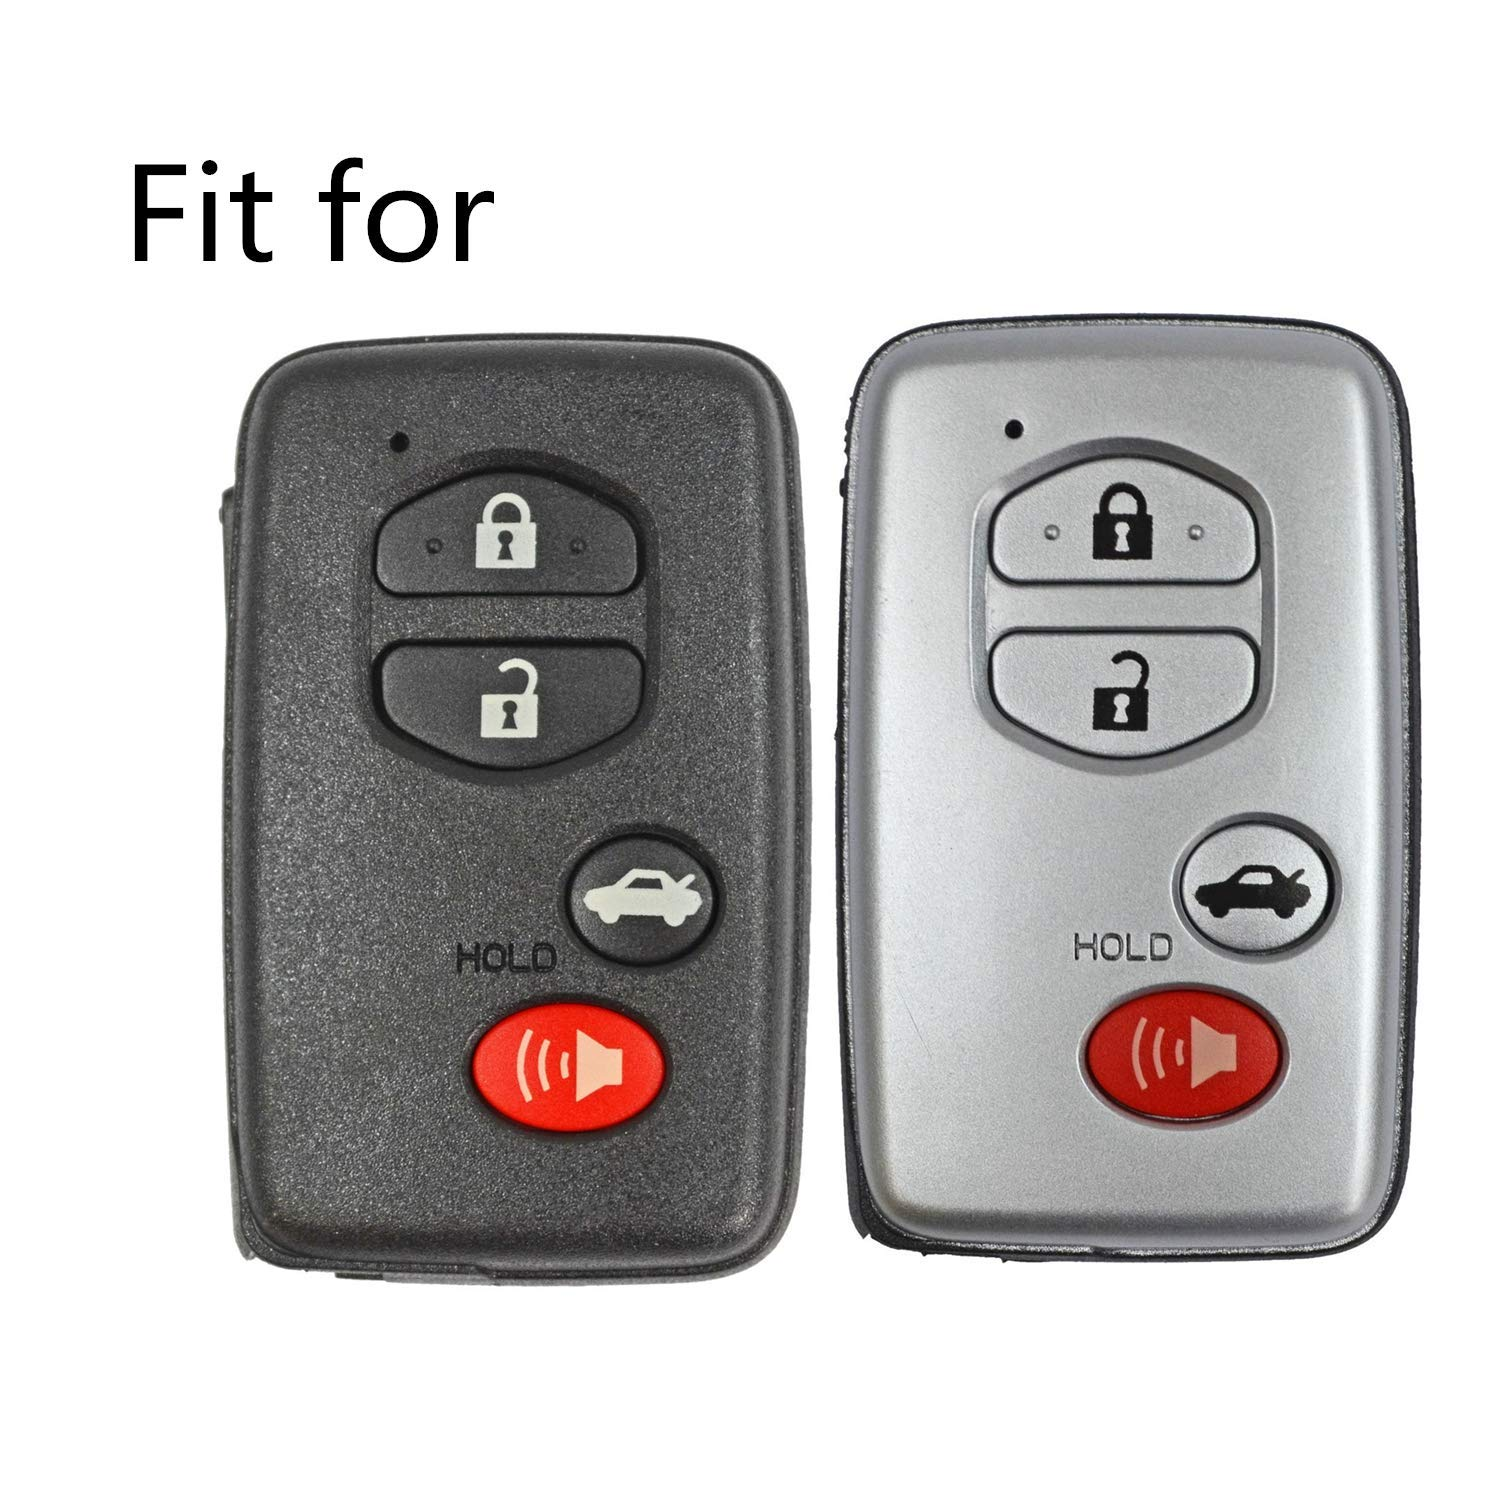 MJKEY 2Pcs New 4 Buttons Black Silicone Smart Remote Key Case Fob Jacket Cover Key chain Skin Holder for Toyota Camry Avalon Highlander RAV4 Sequoia